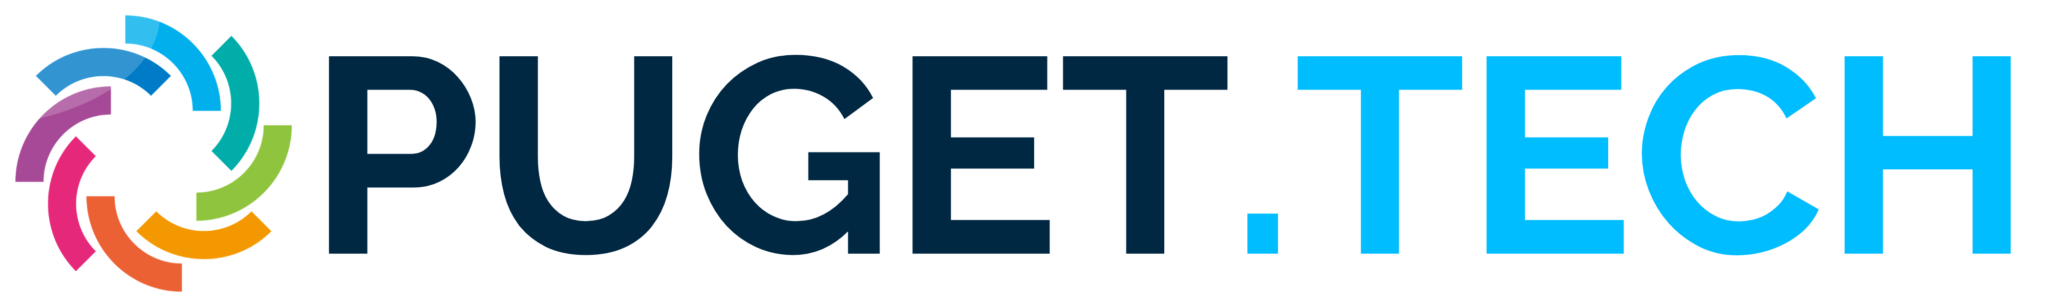 Puget Tech Logo